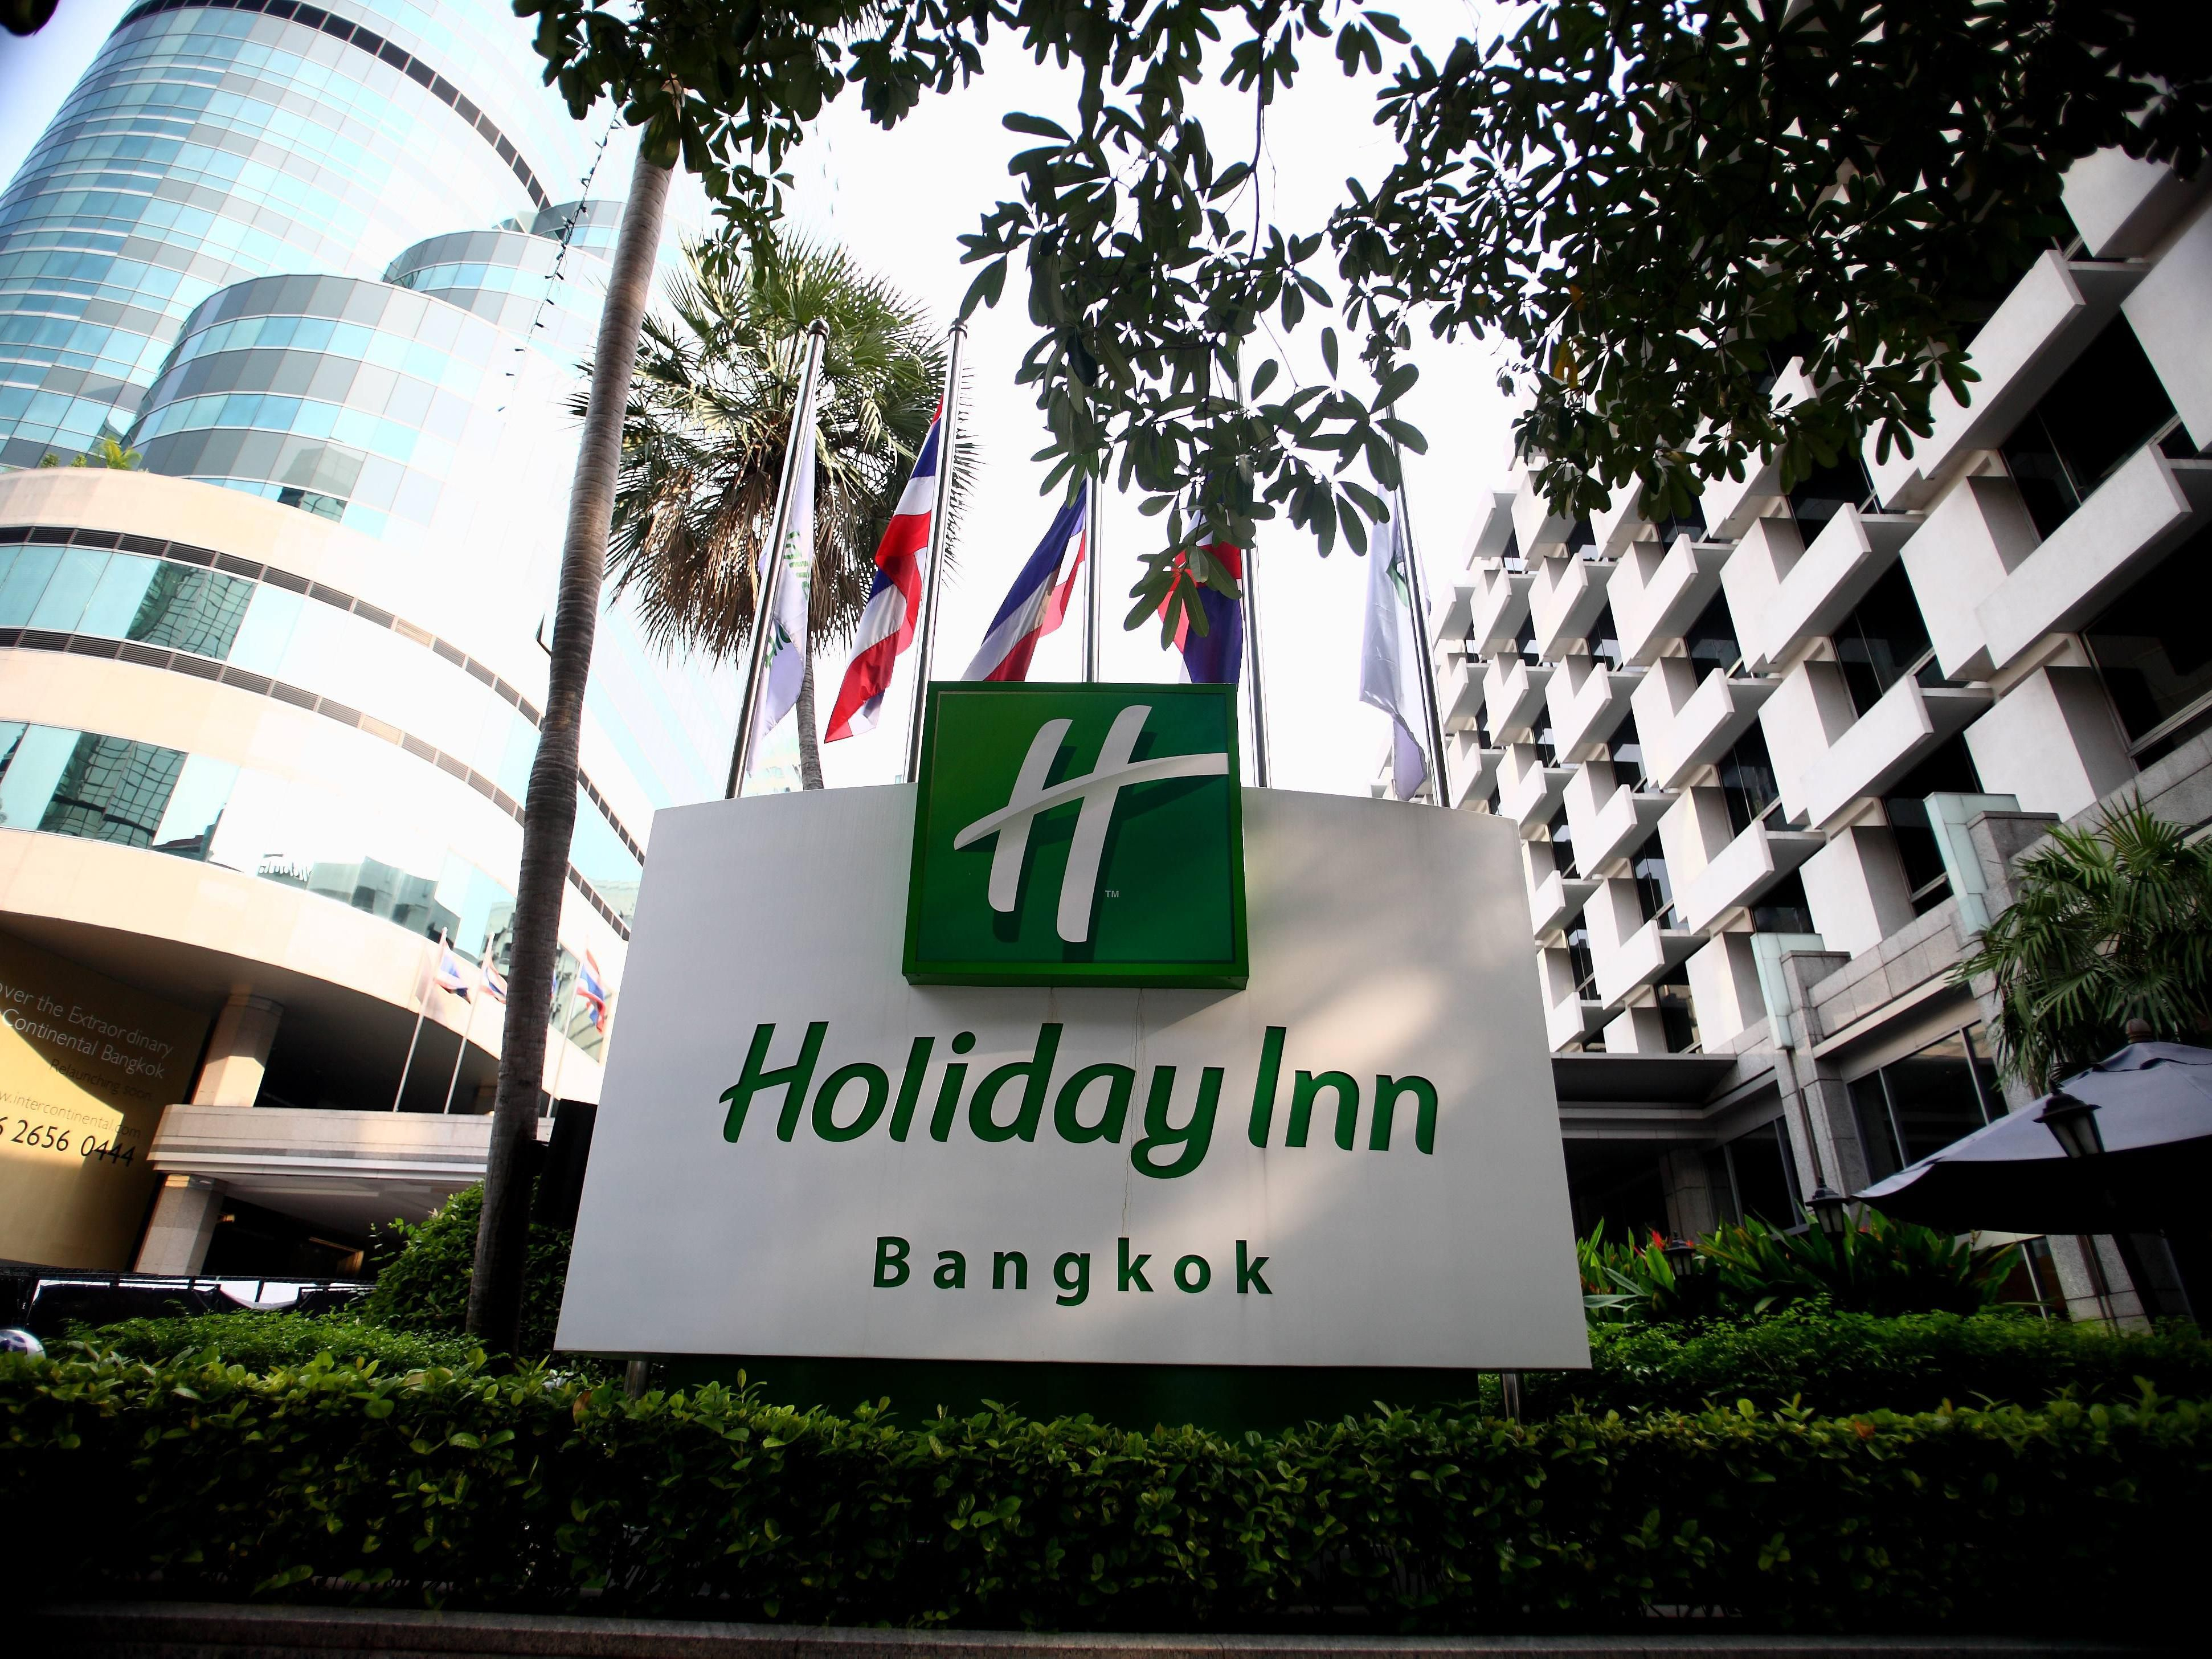 Holiday Inn Bangkok - Hotel Exterior